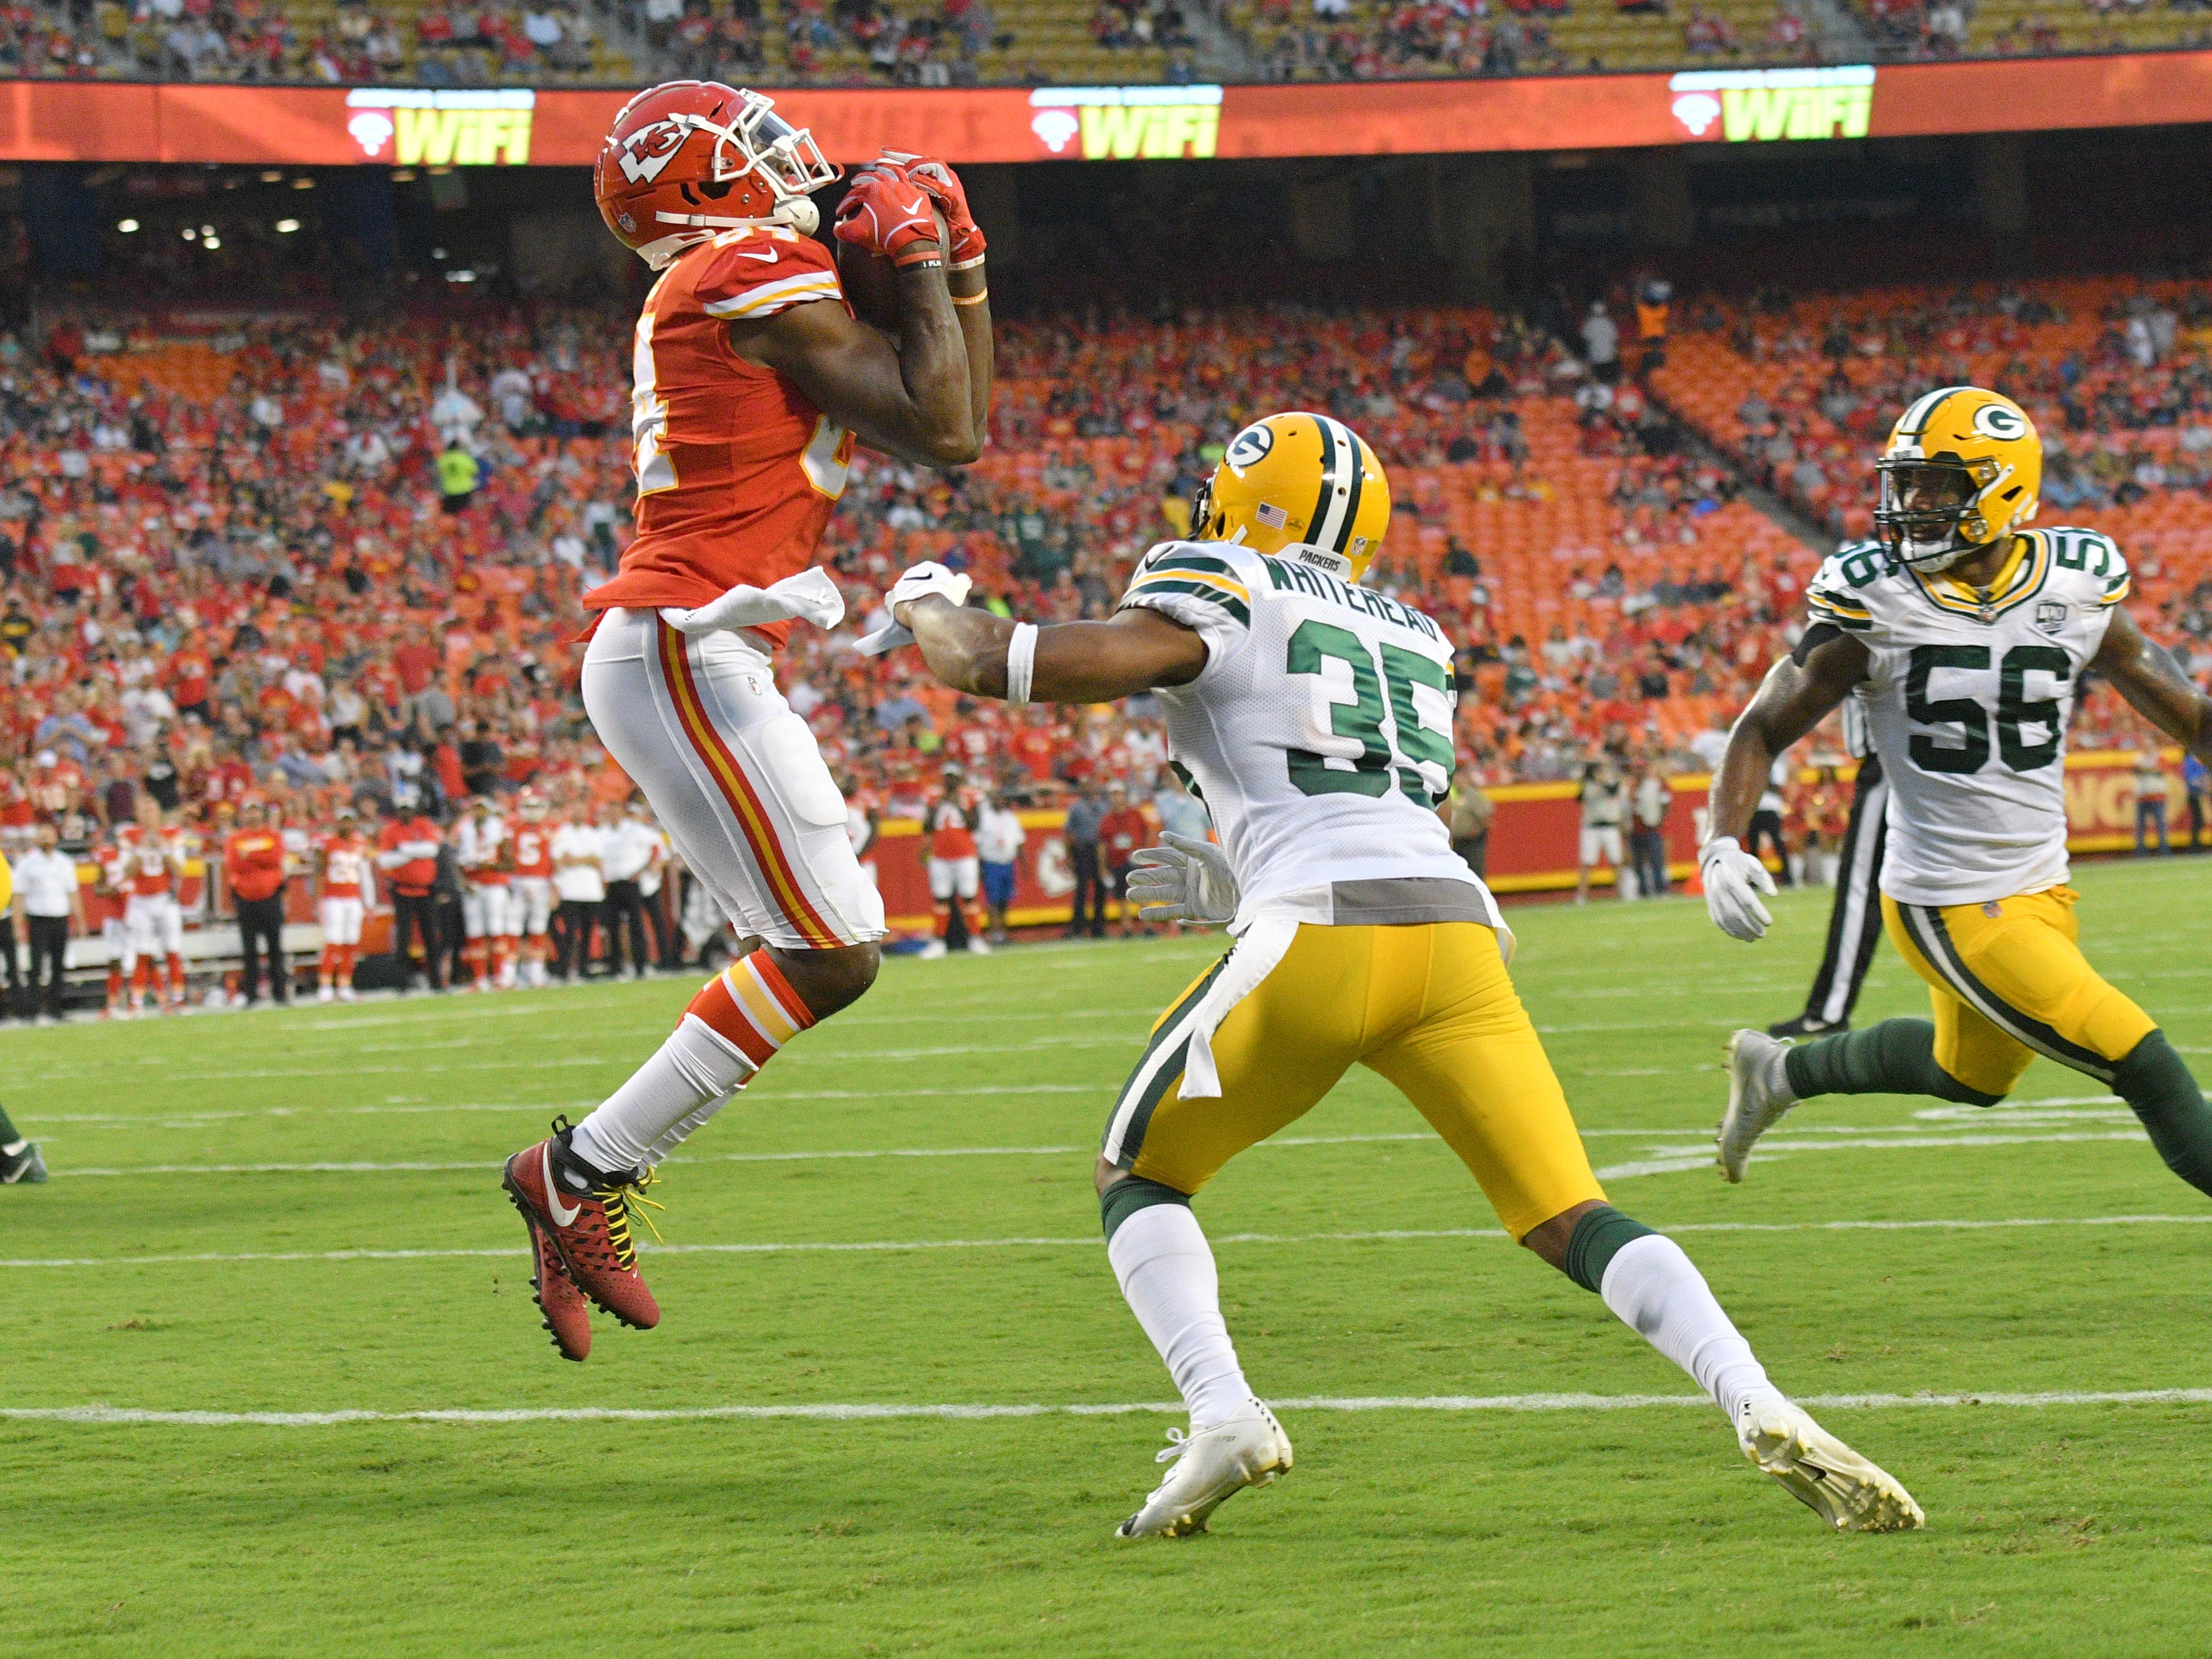 Aug 30, 2018; Kansas City, MO, USA; Kansas City Chiefs tight end Demetrius Harris (84) catches a pass as Green Bay Packers safety Jermaine Whitehead (35) defends during the first half at Arrowhead Stadium.